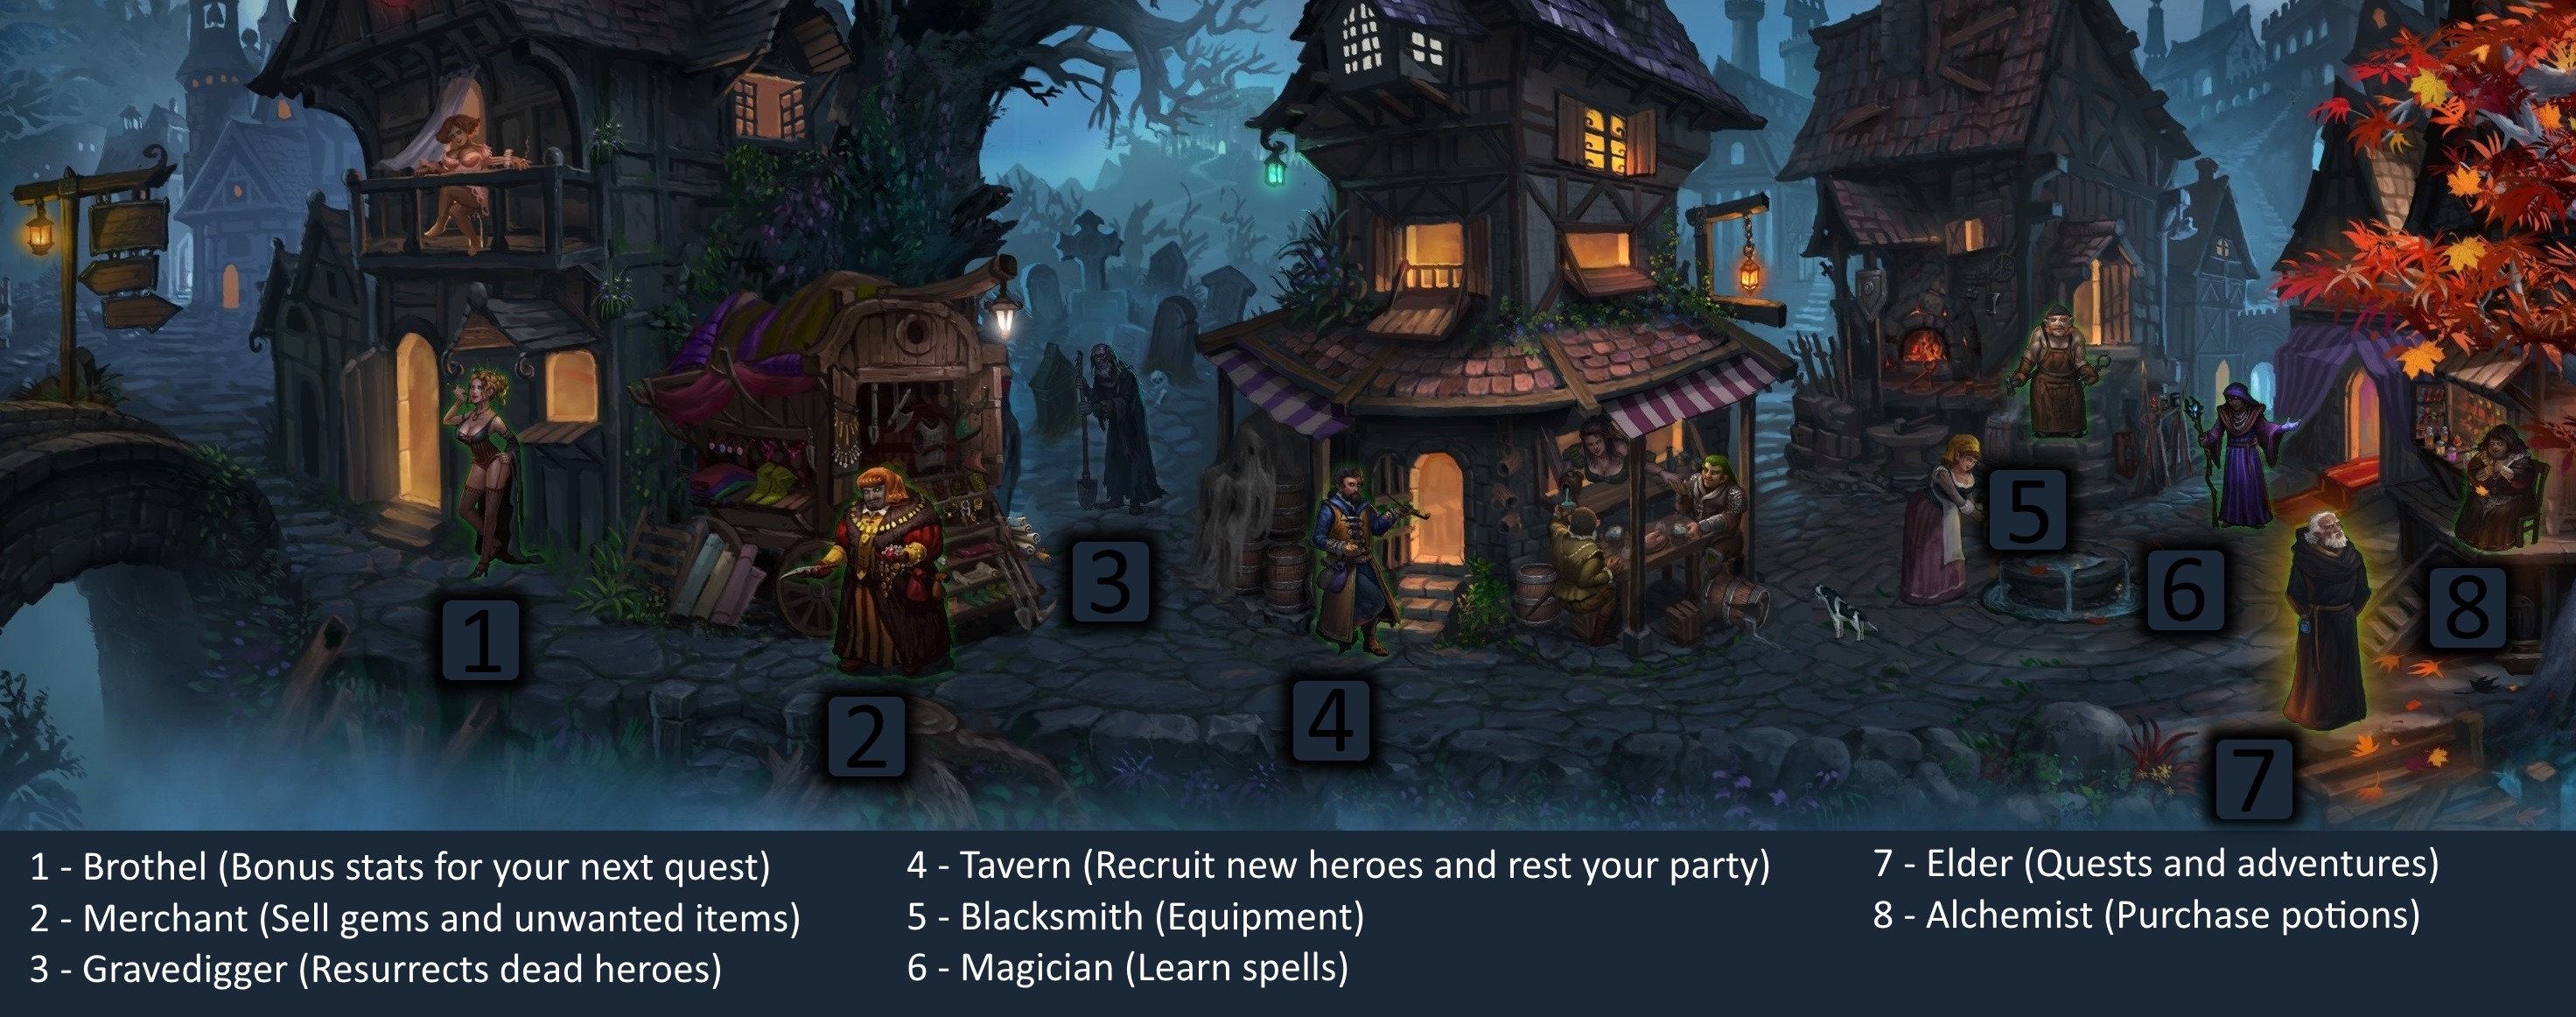 Steam Community :: Guide :: Dark Quest 2 - gameplay basics and